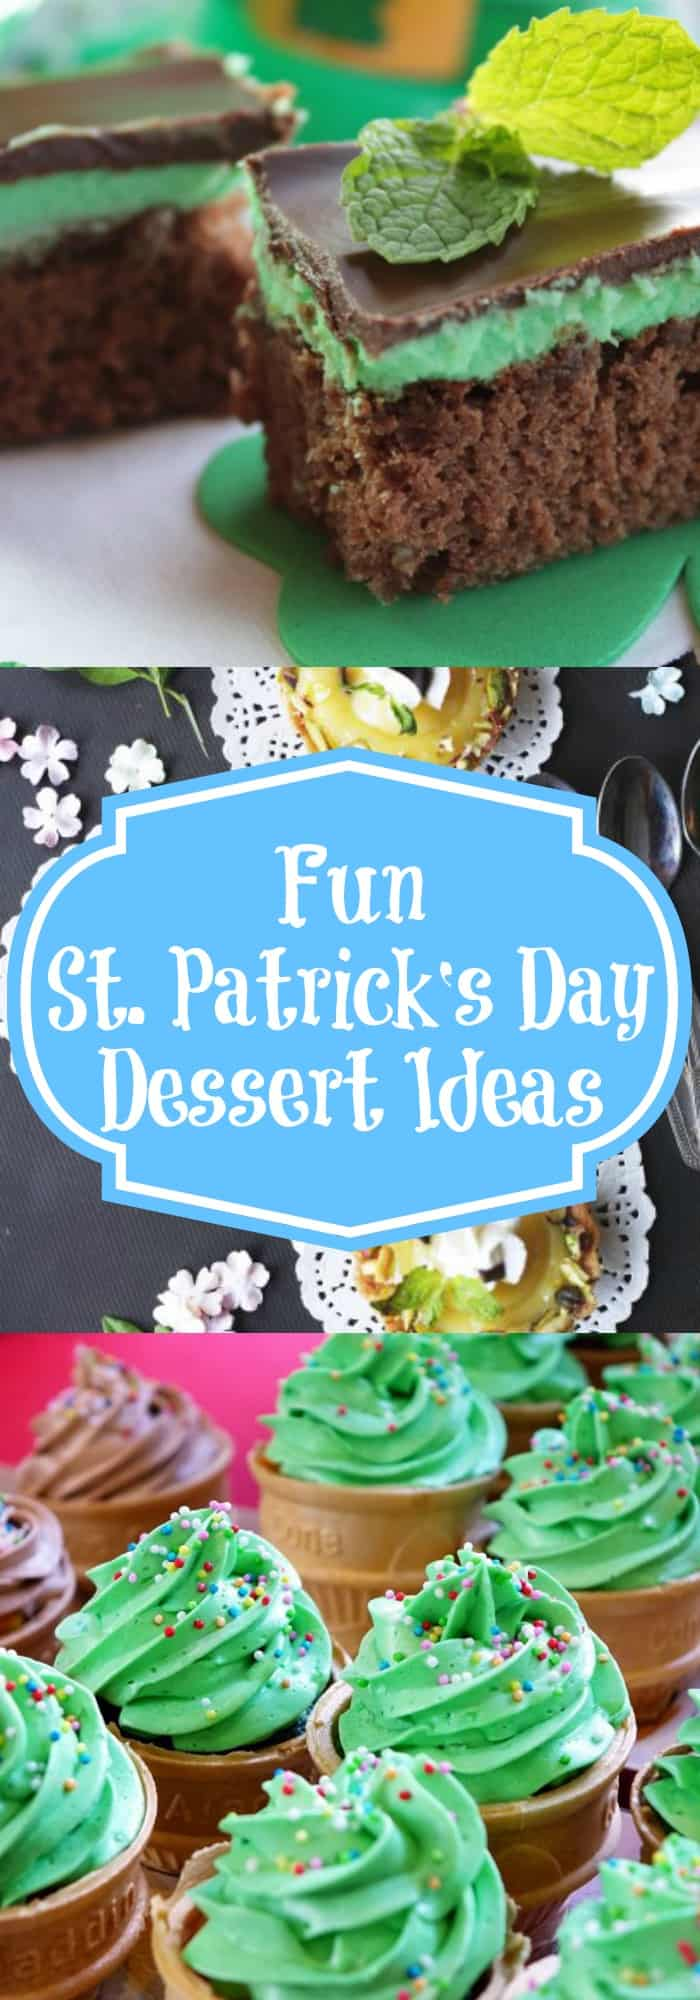 Fun St. Patrick's Day Dessert Ideas